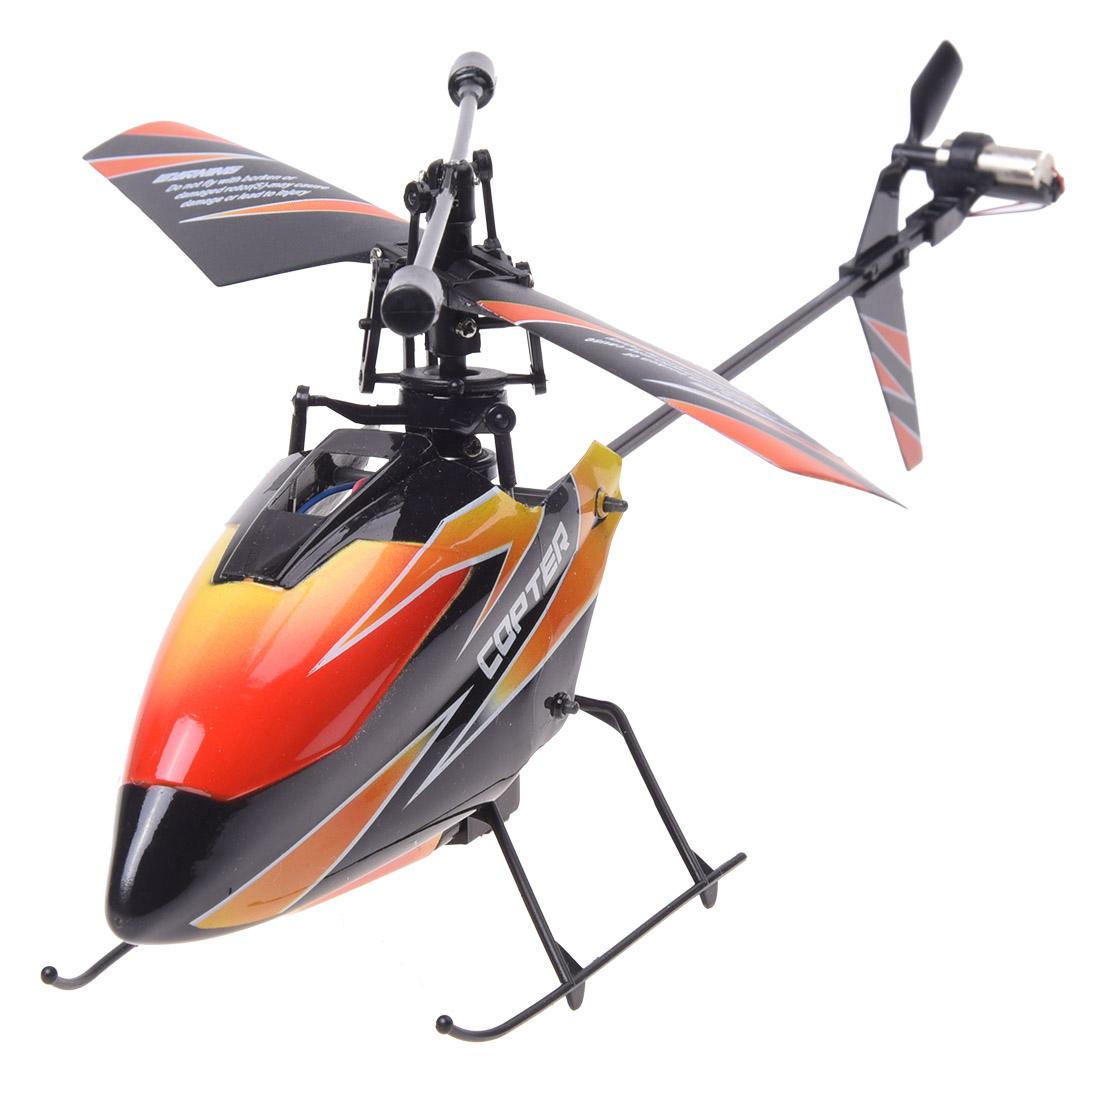 цена на Wltoys Replacement V911 2.4GHz 4CH RC Helicopter BNF New Plug Version(Without Transmitter)